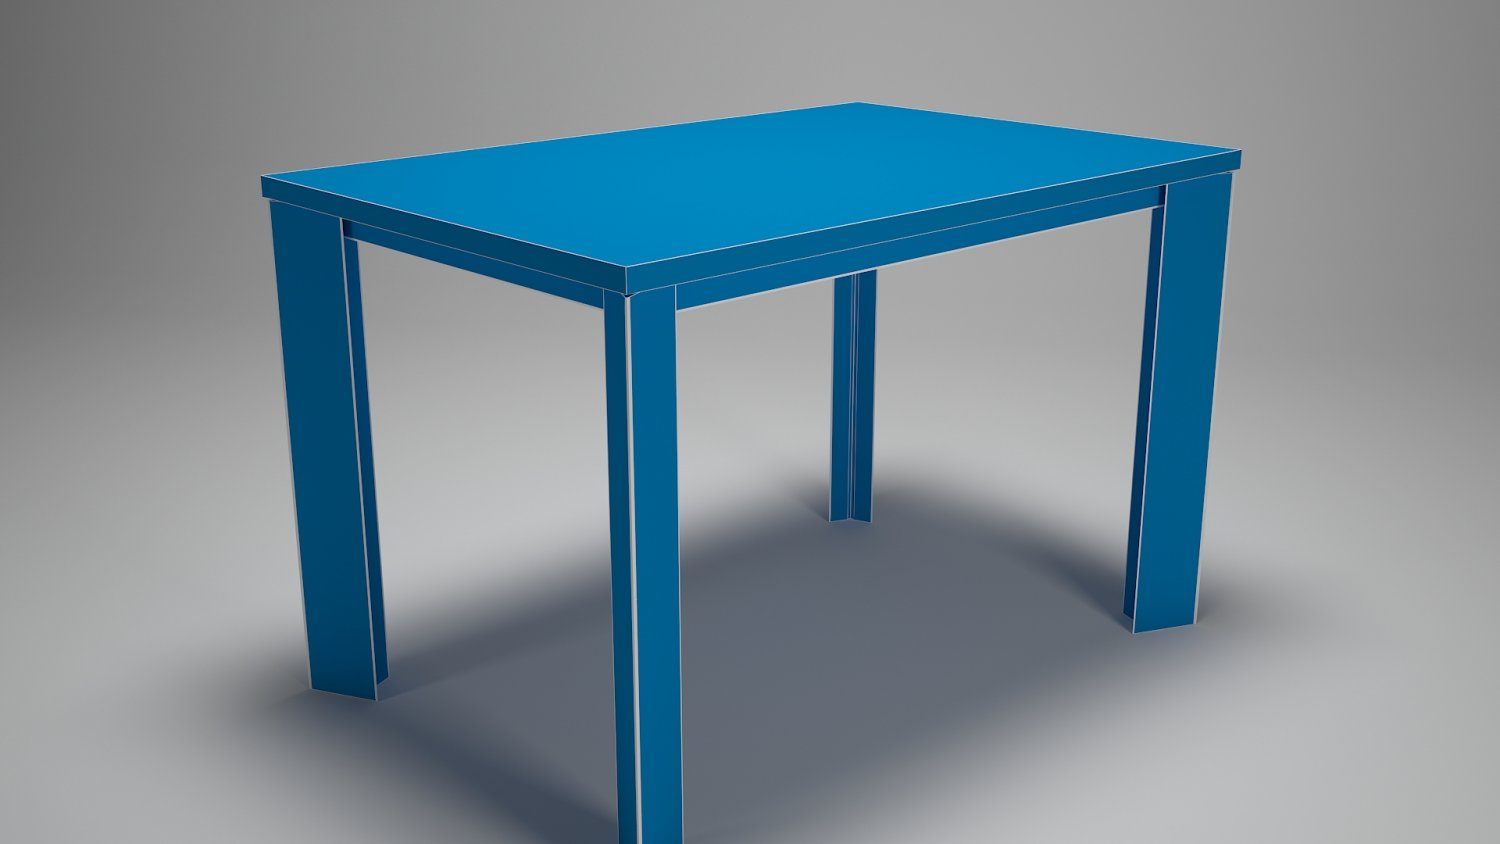 TABLE FOR KITCHEN-DINING ROOM - STEEL-WOOD MATERALS 3D Model in ...